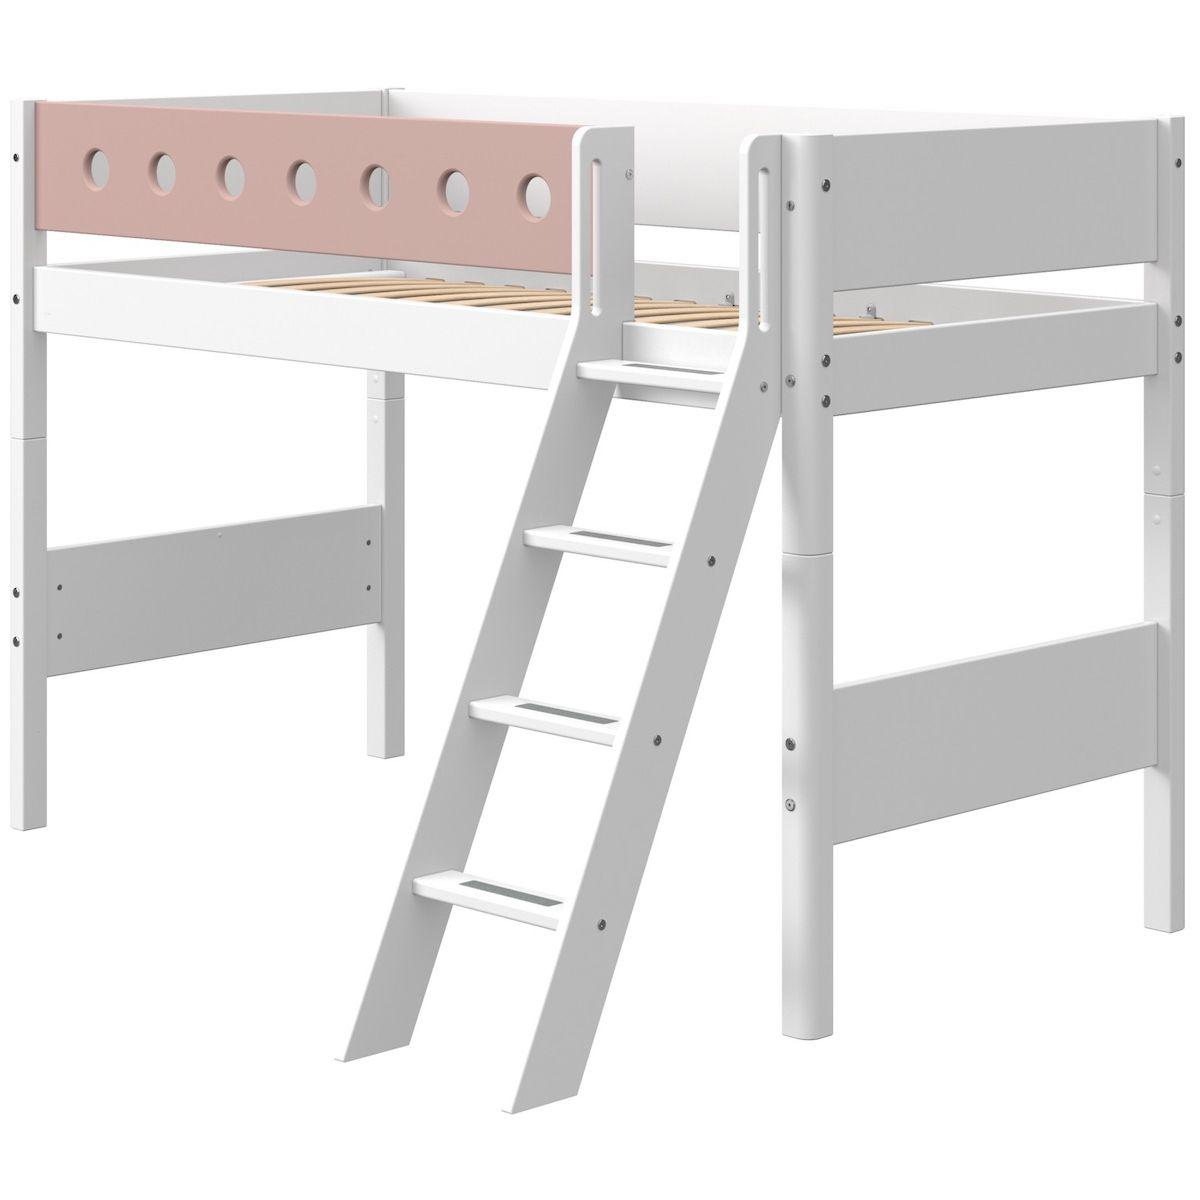 Cama semi-alta 90x190cm escalera inclinada WHITE Flexa blanco-rosa claro